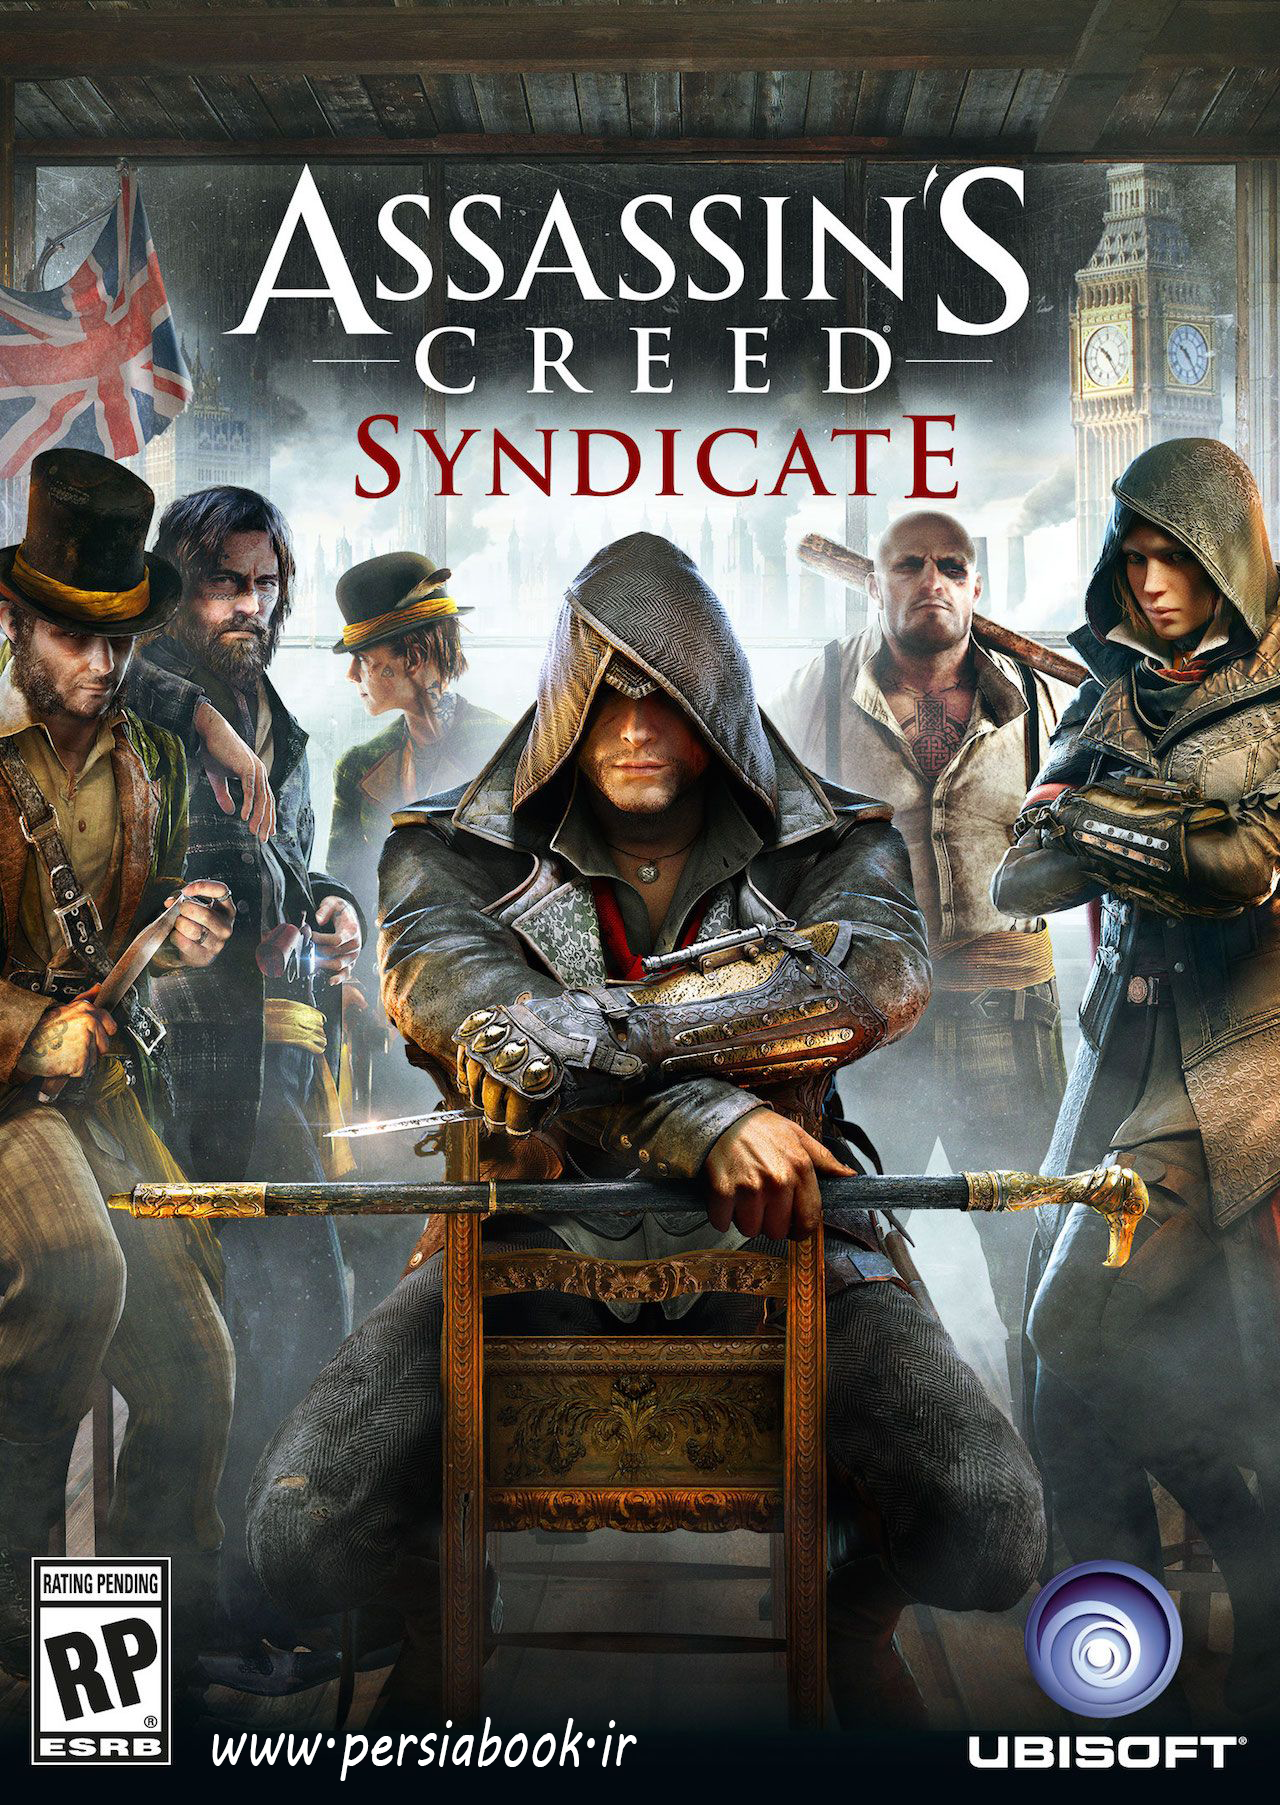 Asssassin's Creed Syndicate